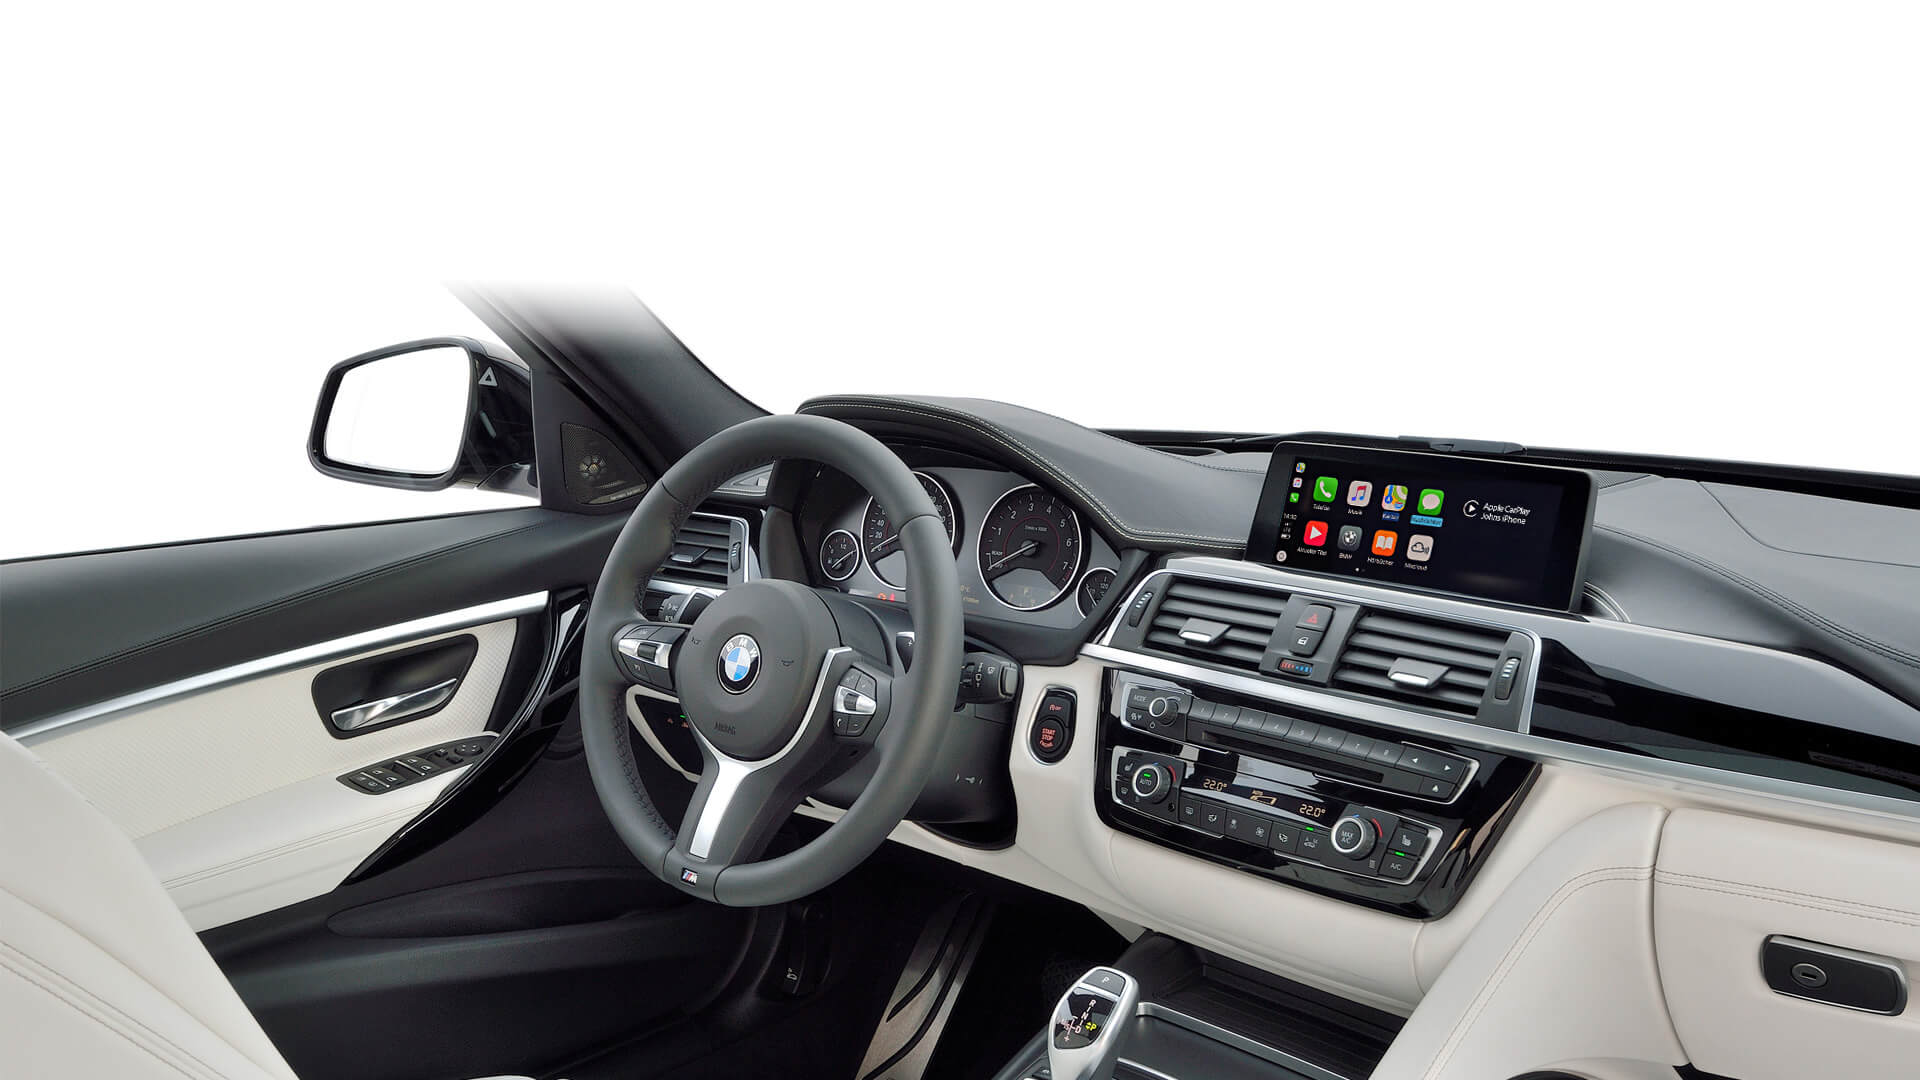 Bmw F30 F31 3 Series With Retrofit Apple Carplay Integrated Automotive Uk